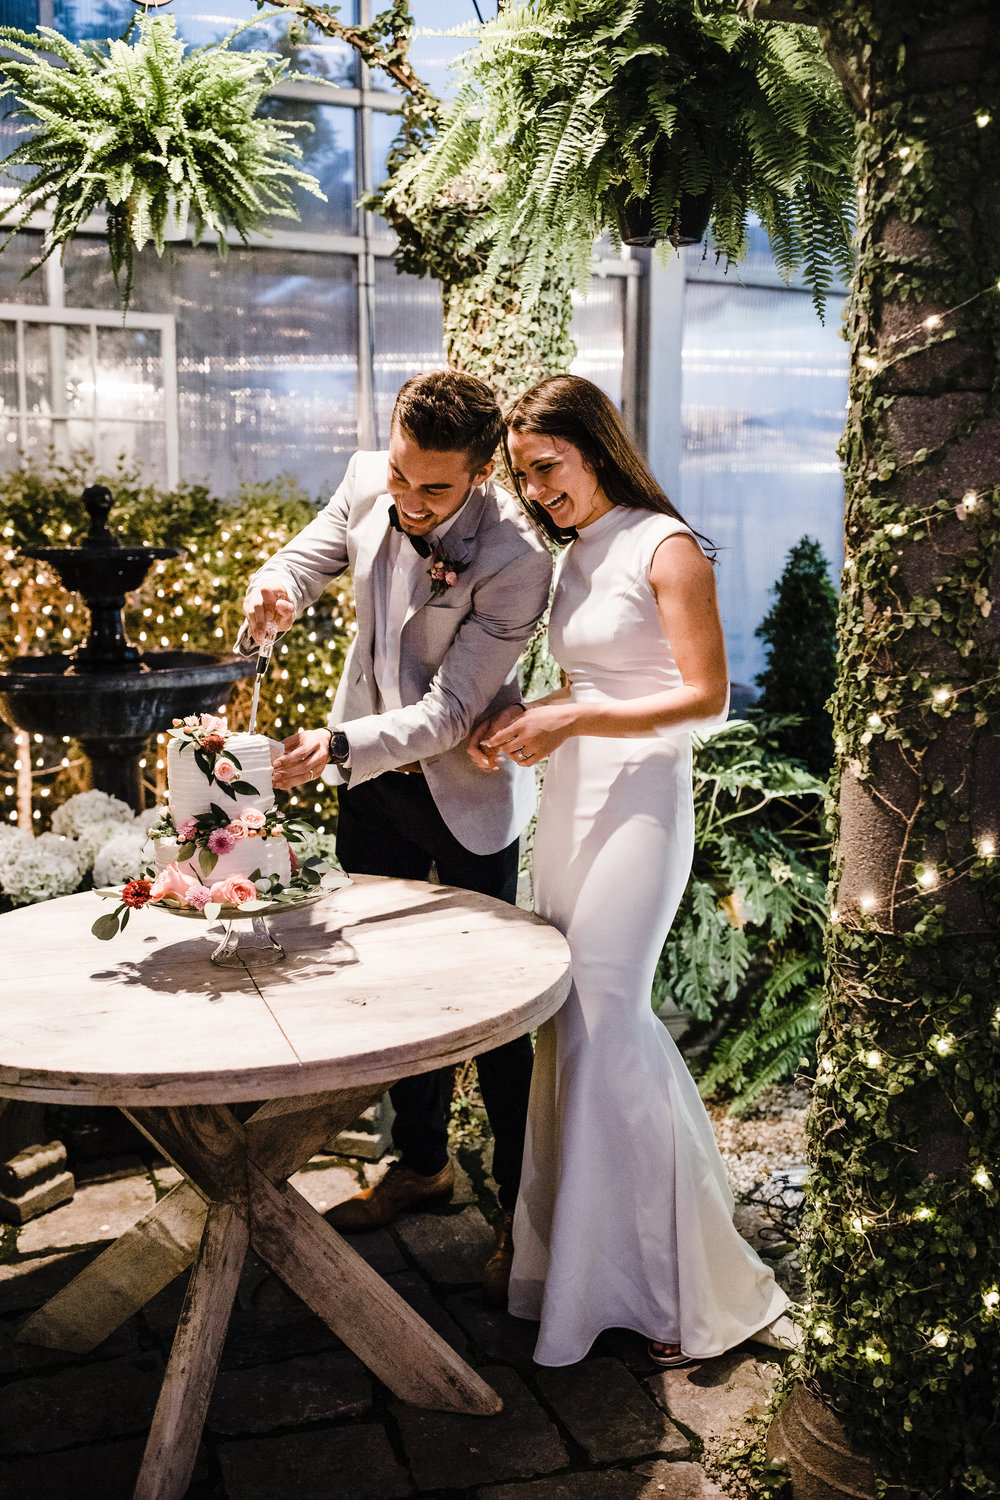 draper wedding reception photographer cutting cake smiling botanicals